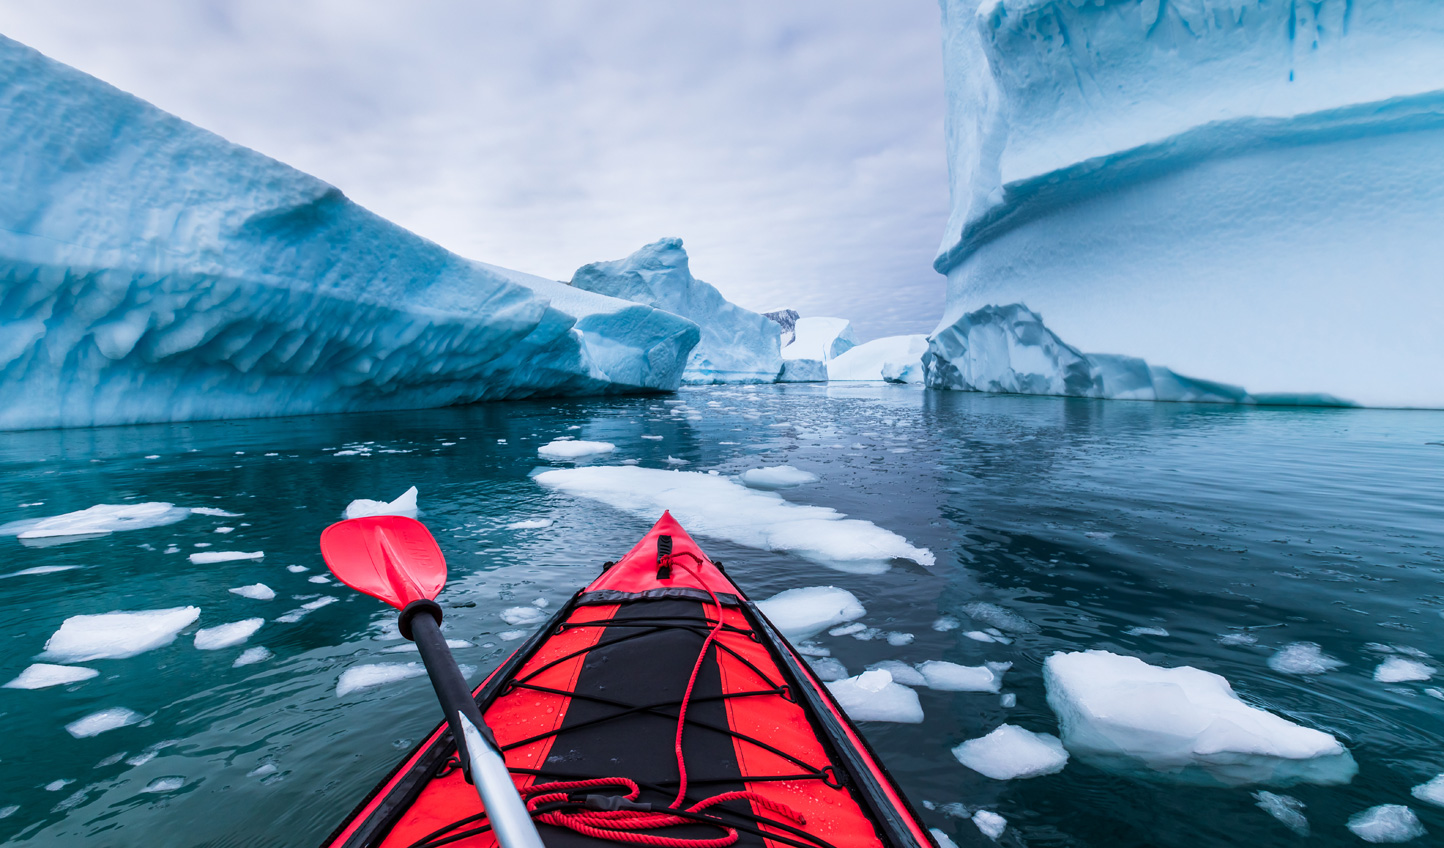 Opportunities to kayak along the calm waters